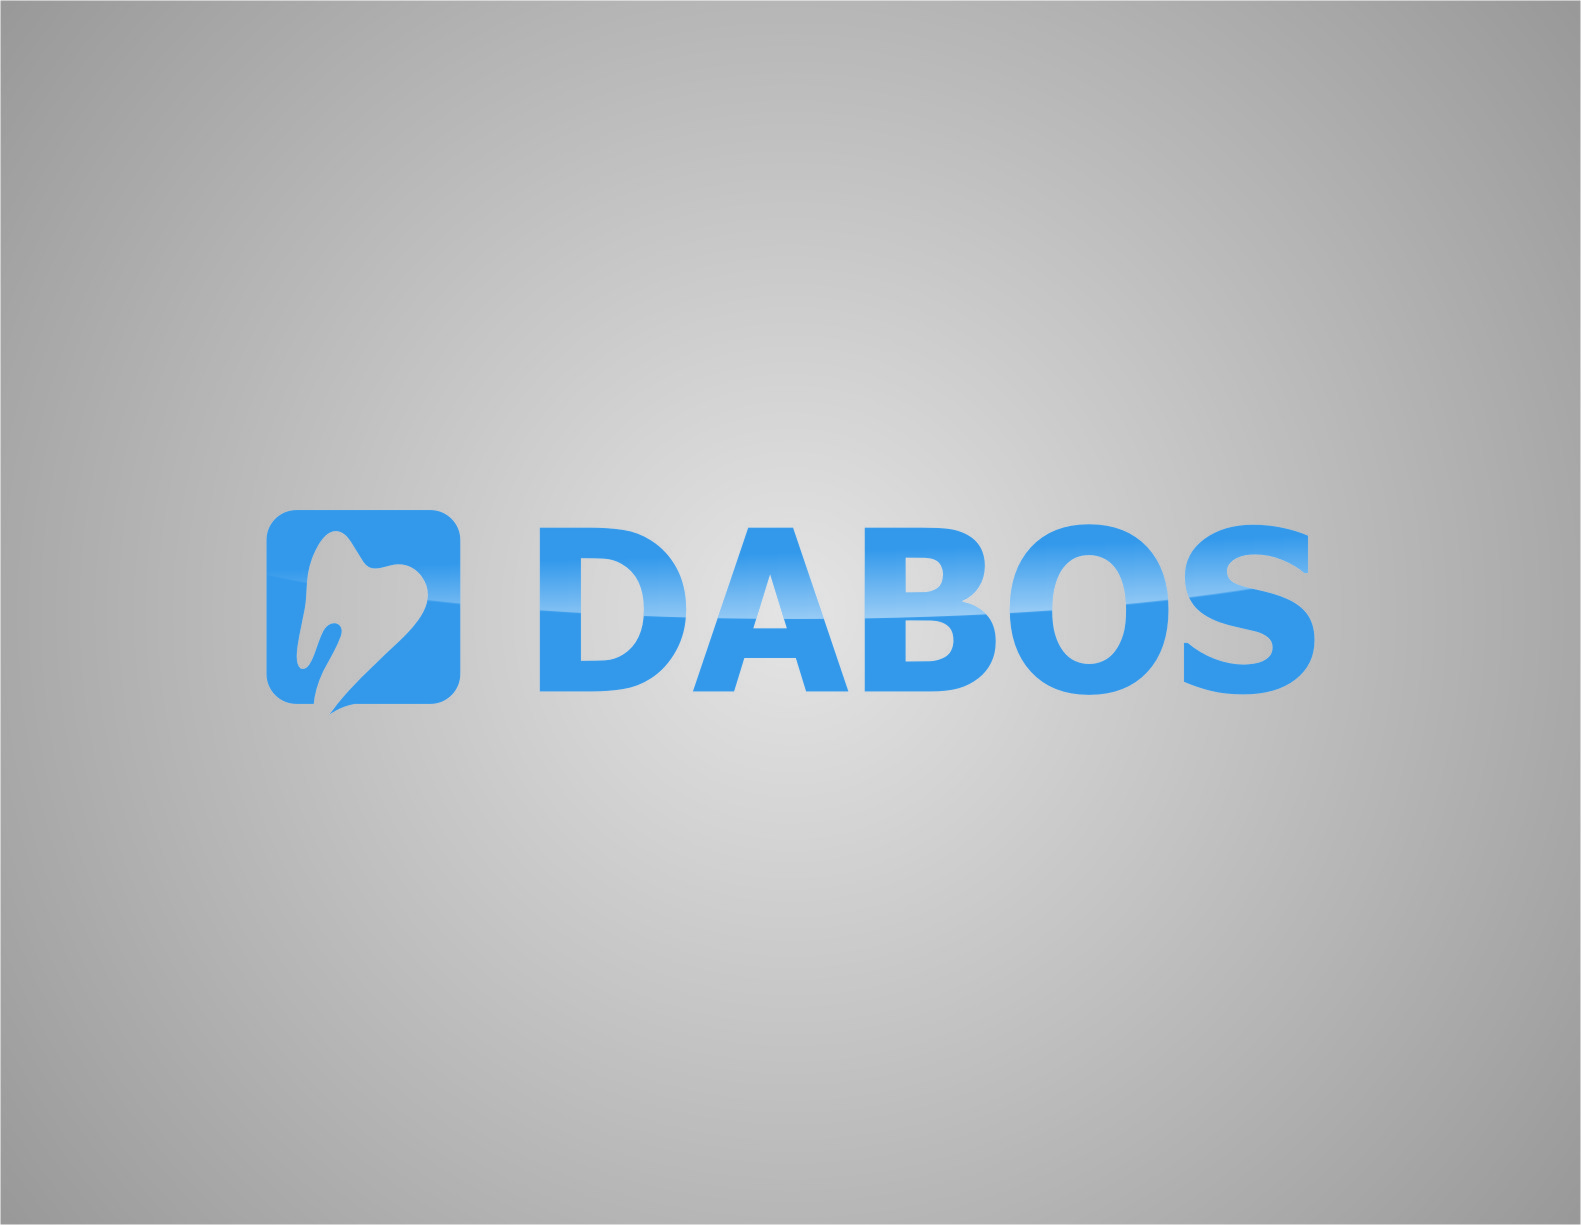 Logo Design by Ngepet_art - Entry No. 115 in the Logo Design Contest Imaginative Logo Design for DABOS, Limited Liability Company.